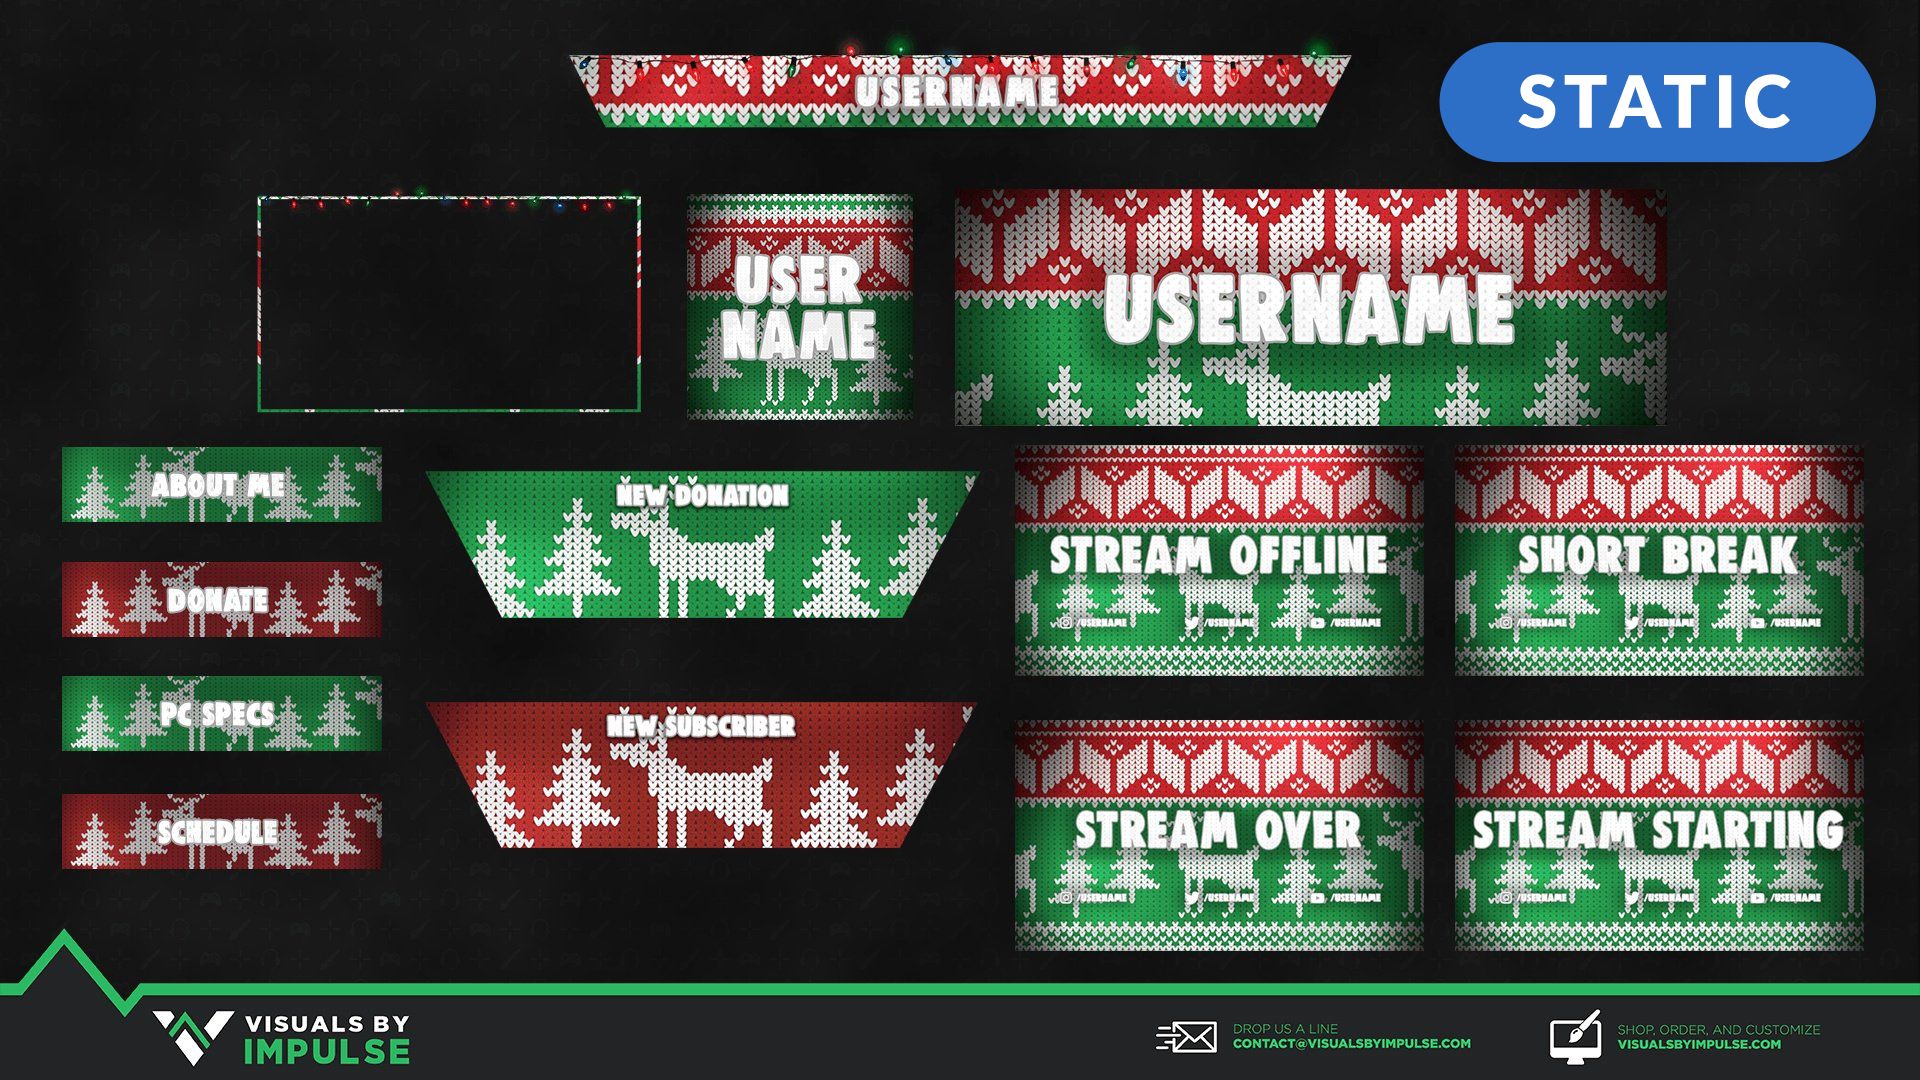 Ugly Sweater Stream Package - Visuals by Impulse